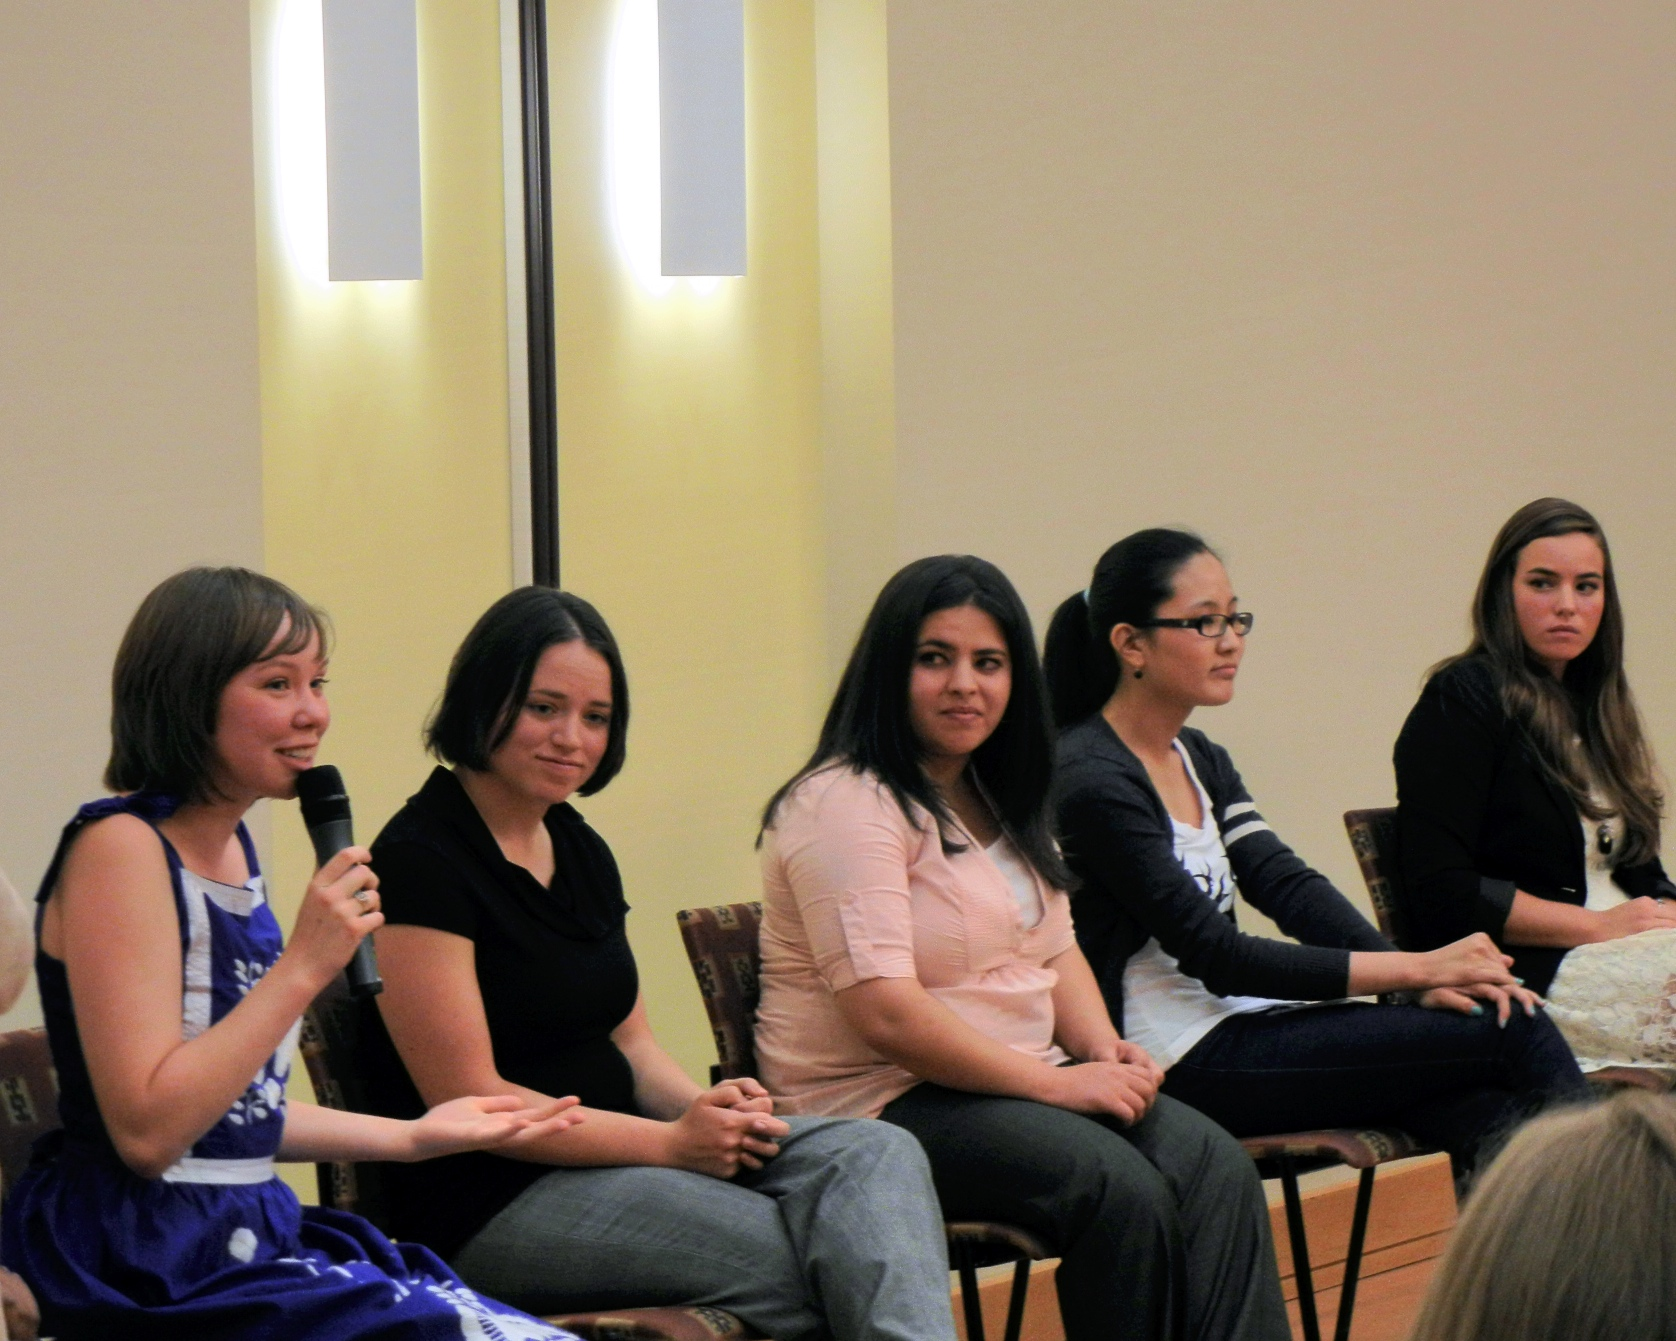 Photo by Marisa Jackels. Senior Elise Tweten speaks at the Women's Interfaith Panel while Kelsy Johnson, Siham Amedy, Sonam Deyki and Kristi Del Vecchio listen.